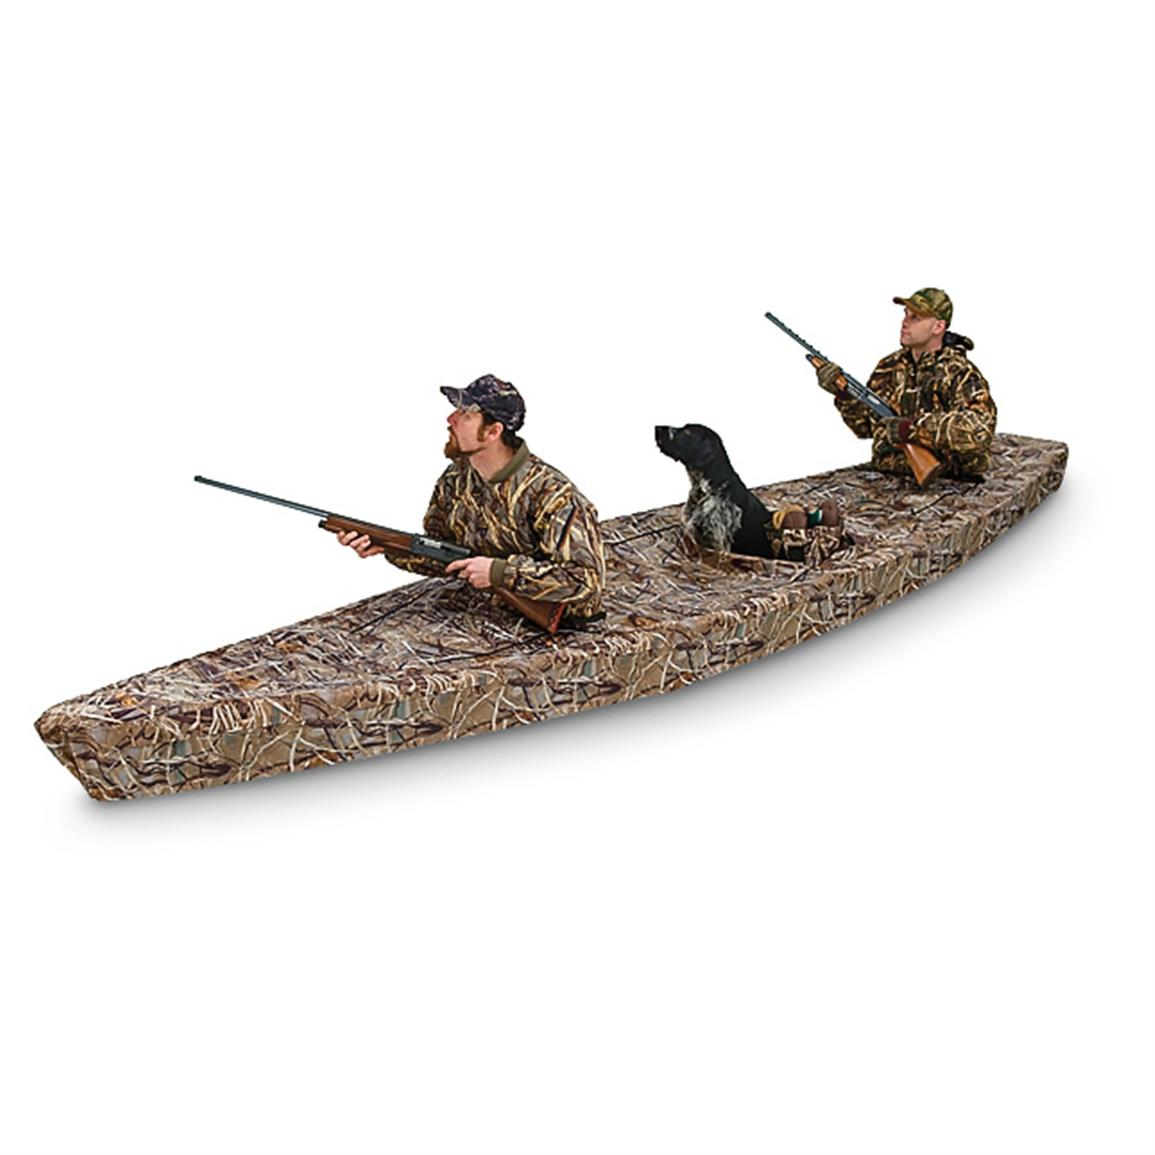 Deluxe Canoe Cover Blind 163689 Boat Covers At